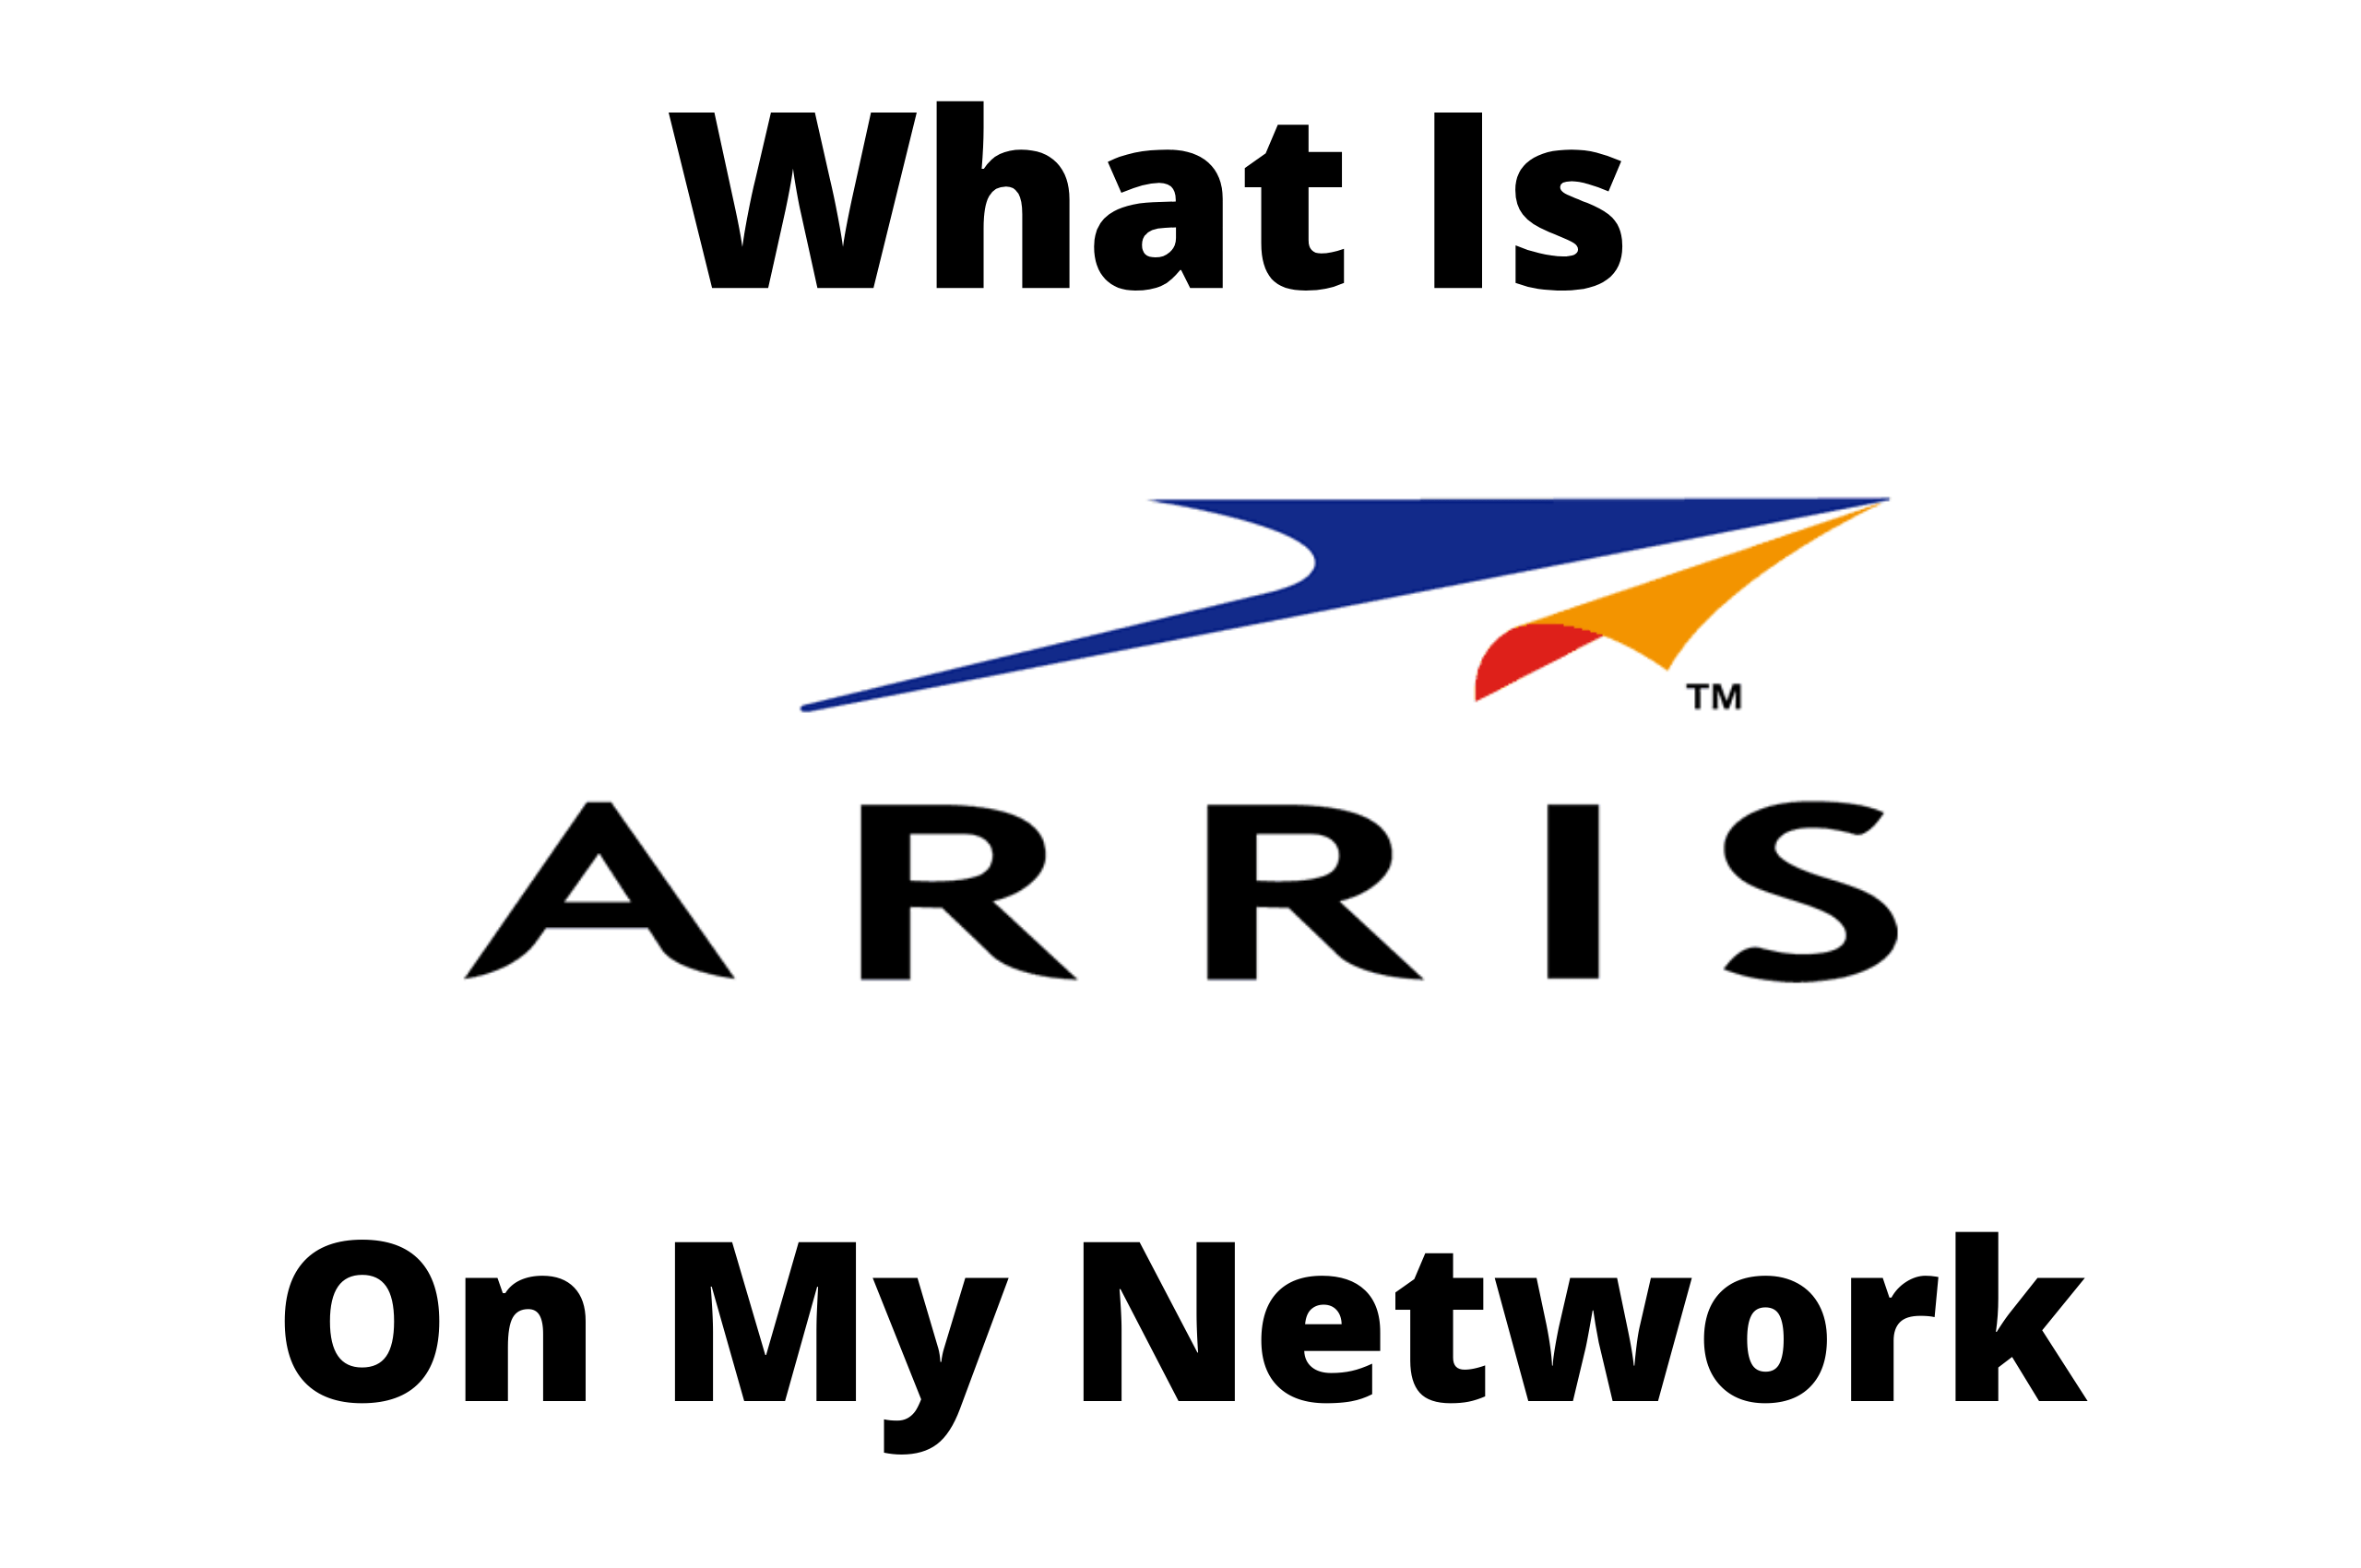 arris group on my network